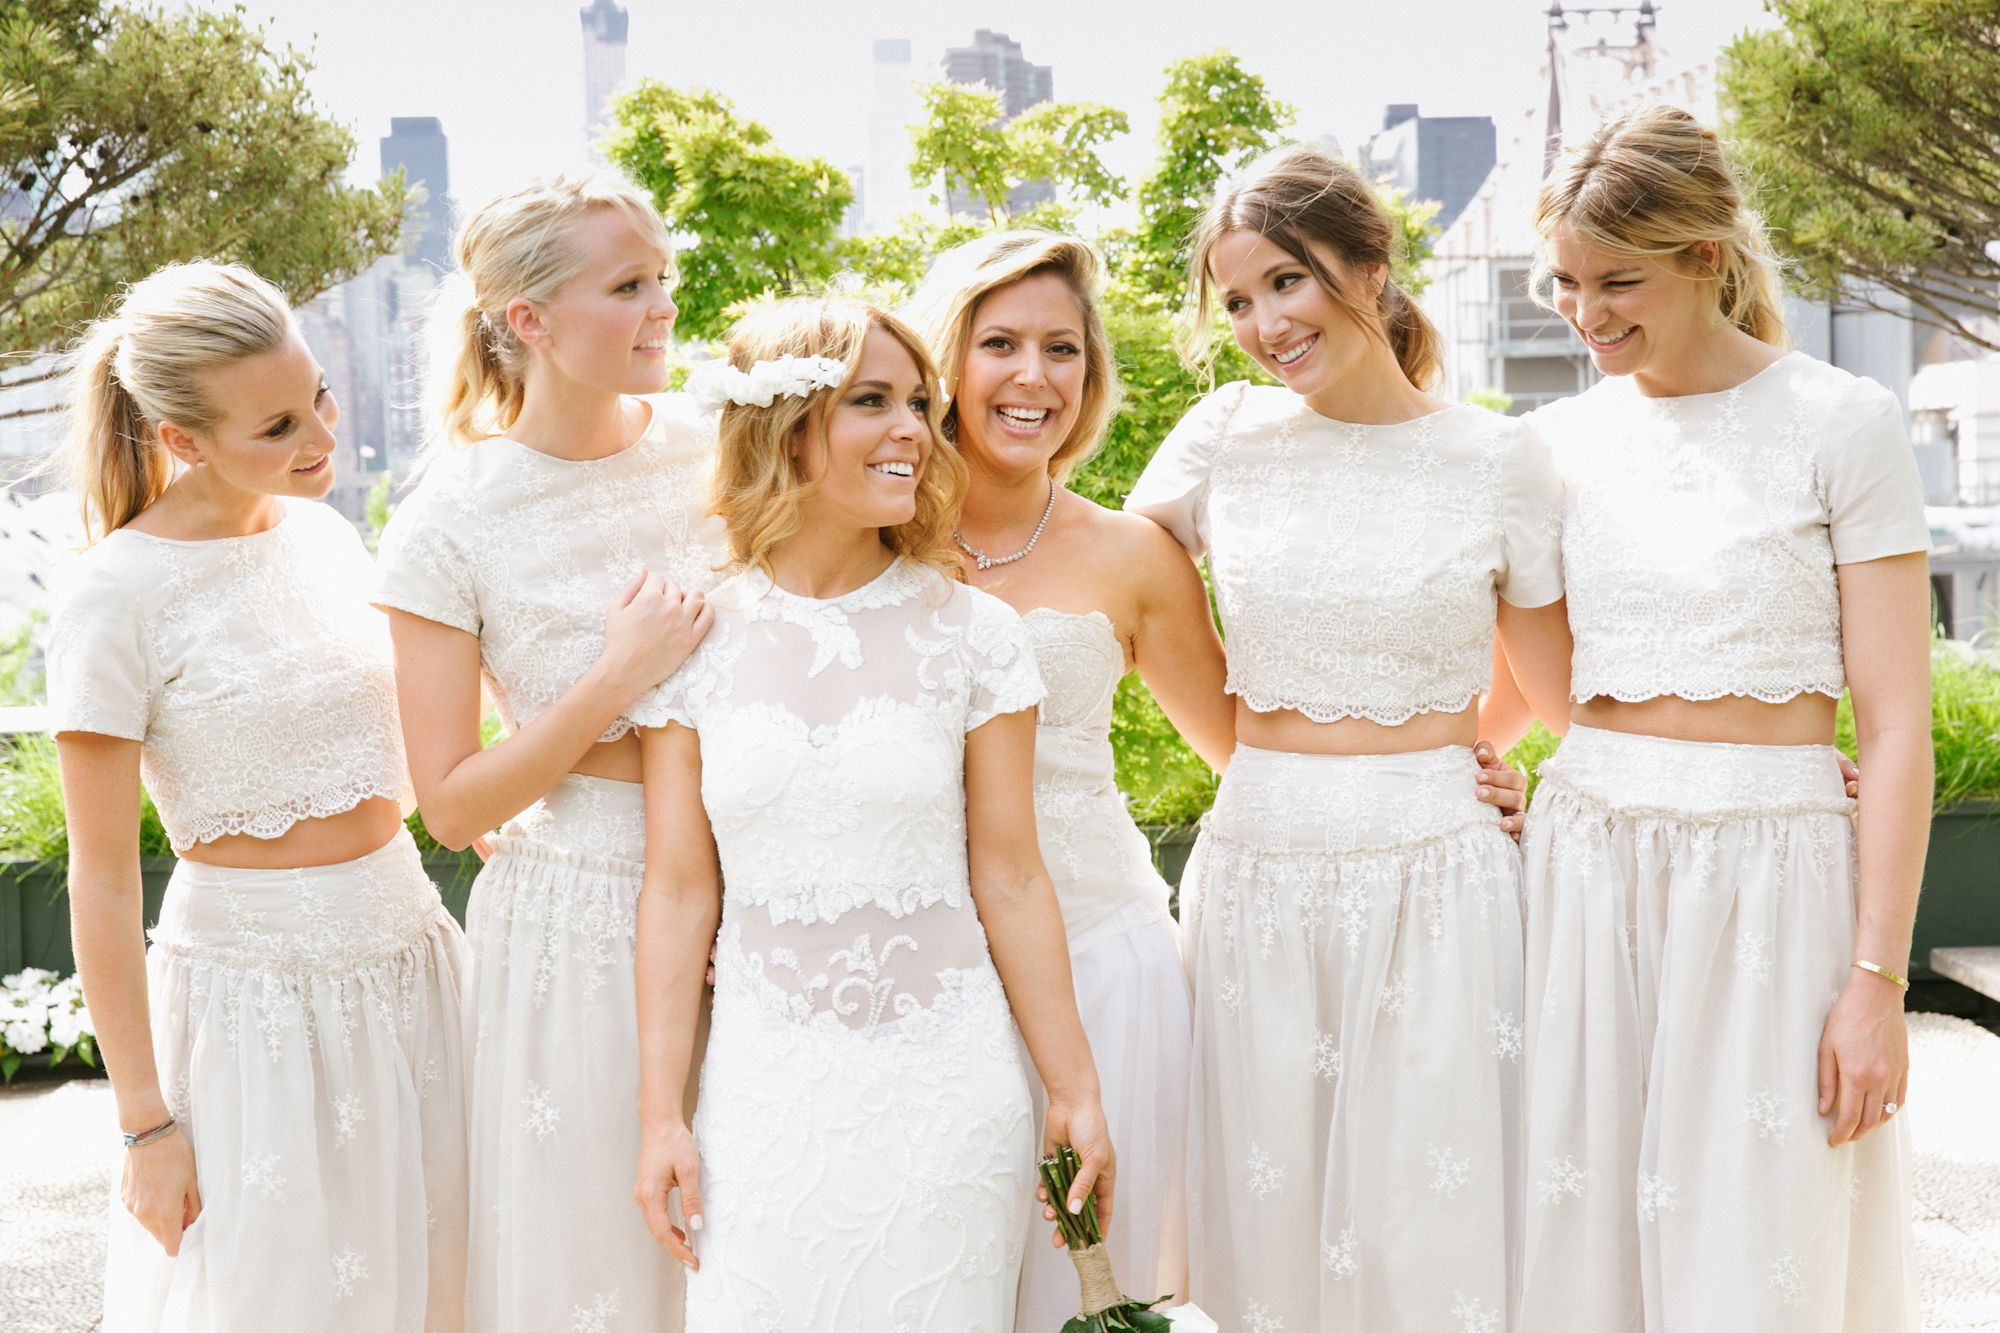 Custom ivory crop top bridesmaid dresses bridesmaid custom ivory crop top bridesmaid dresses ombrellifo Image collections